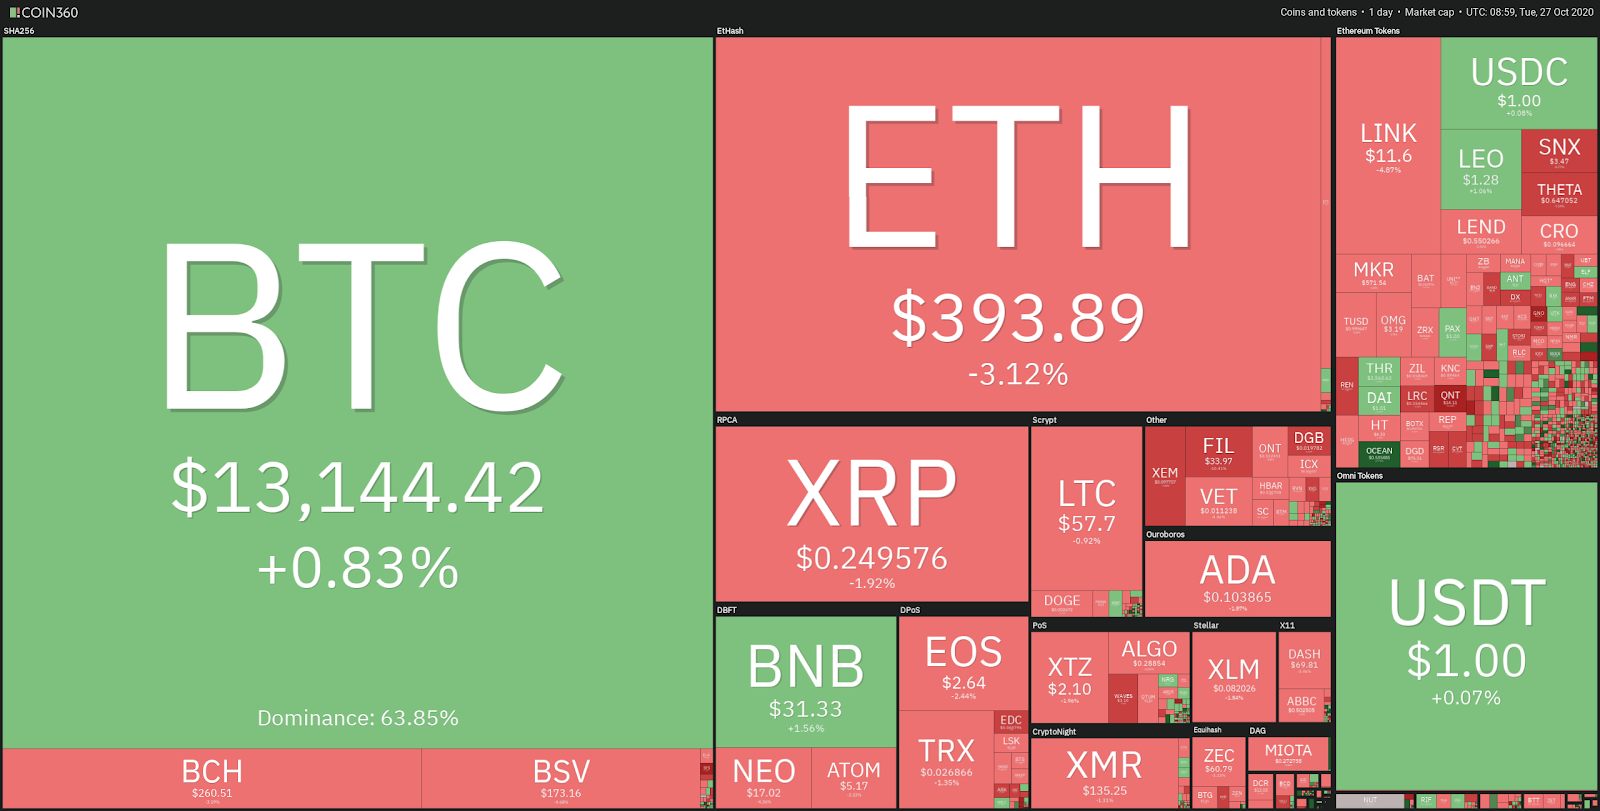 Top cryptocurrency prices - 10/27